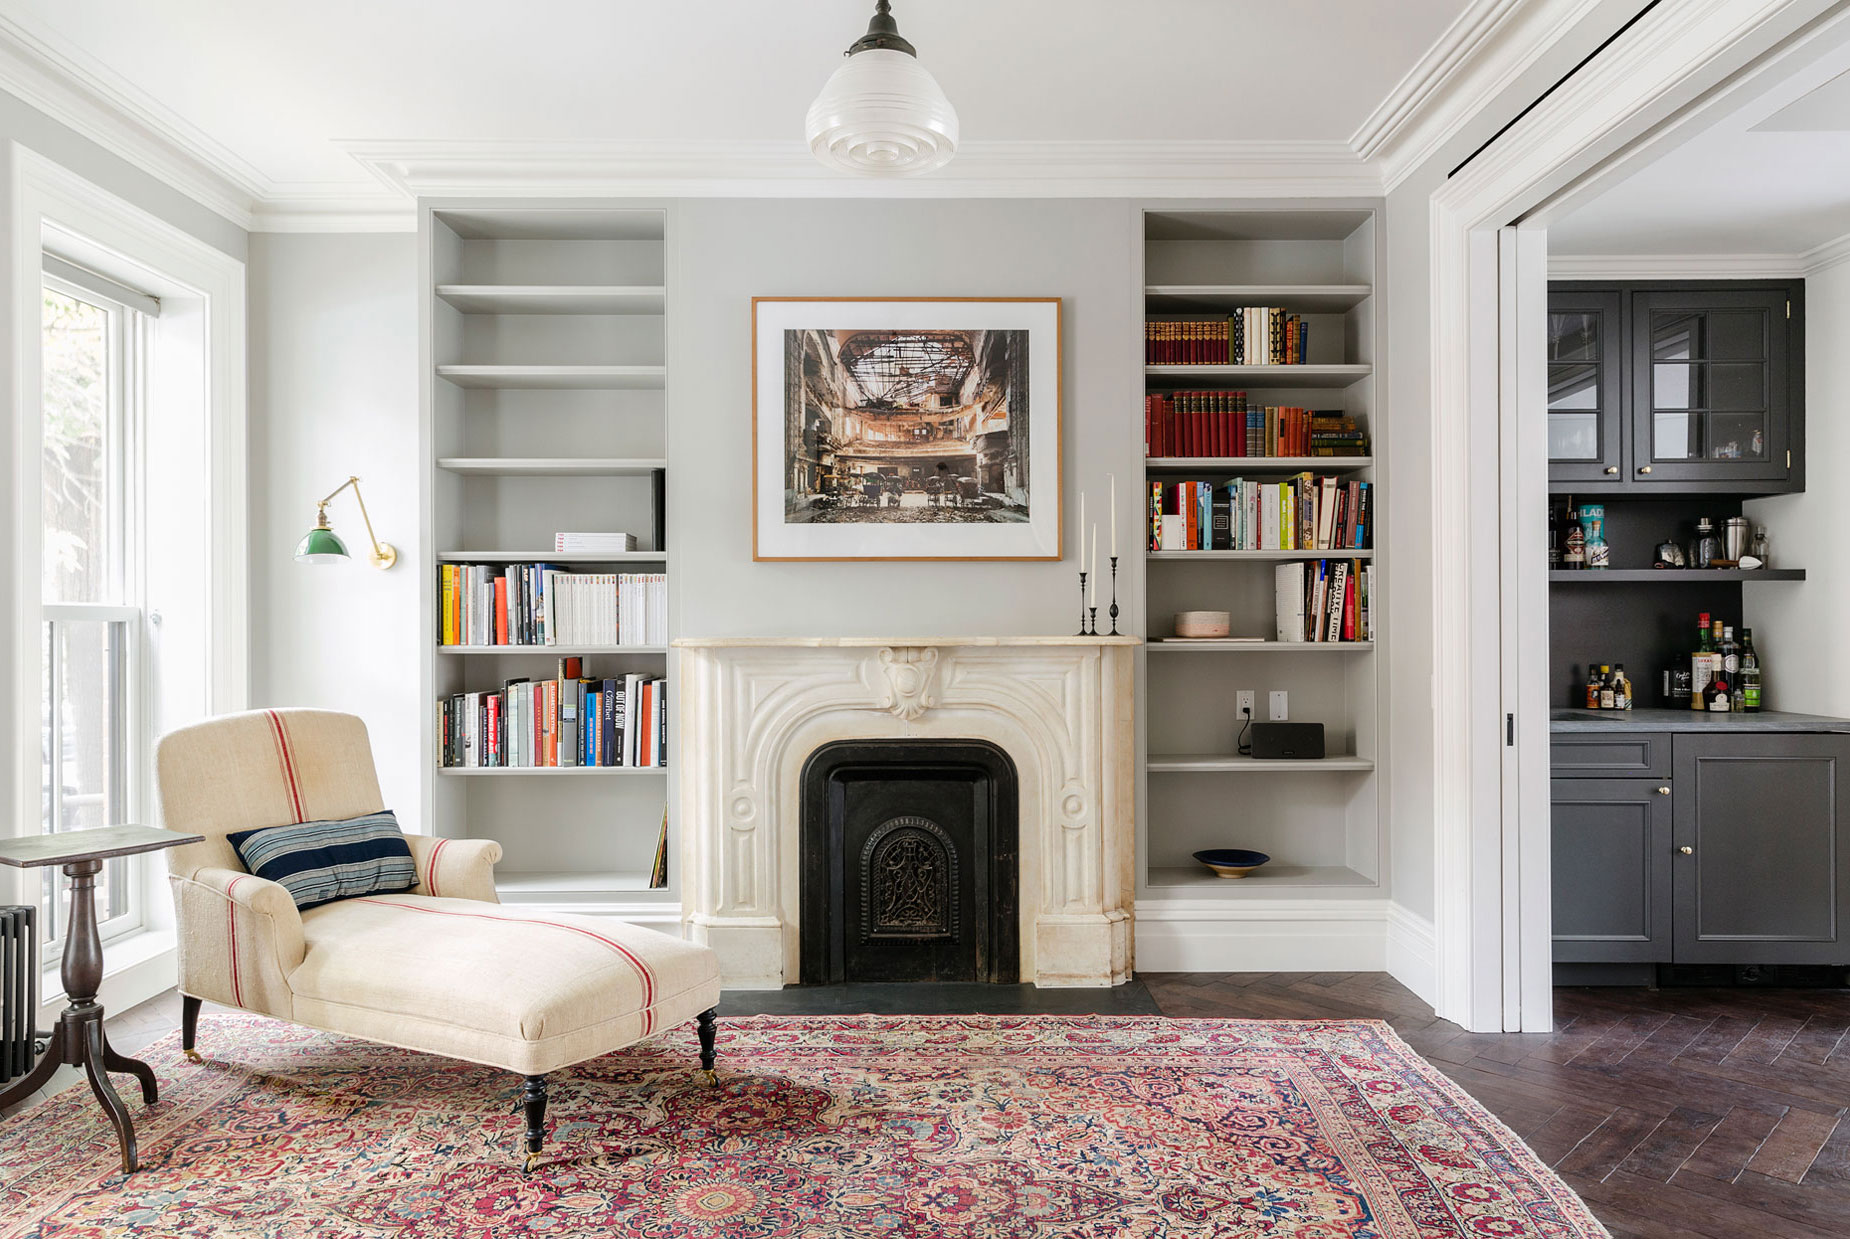 Elegant Cumberland St Townhouse in Brooklyn by Ensemble Architecture-01